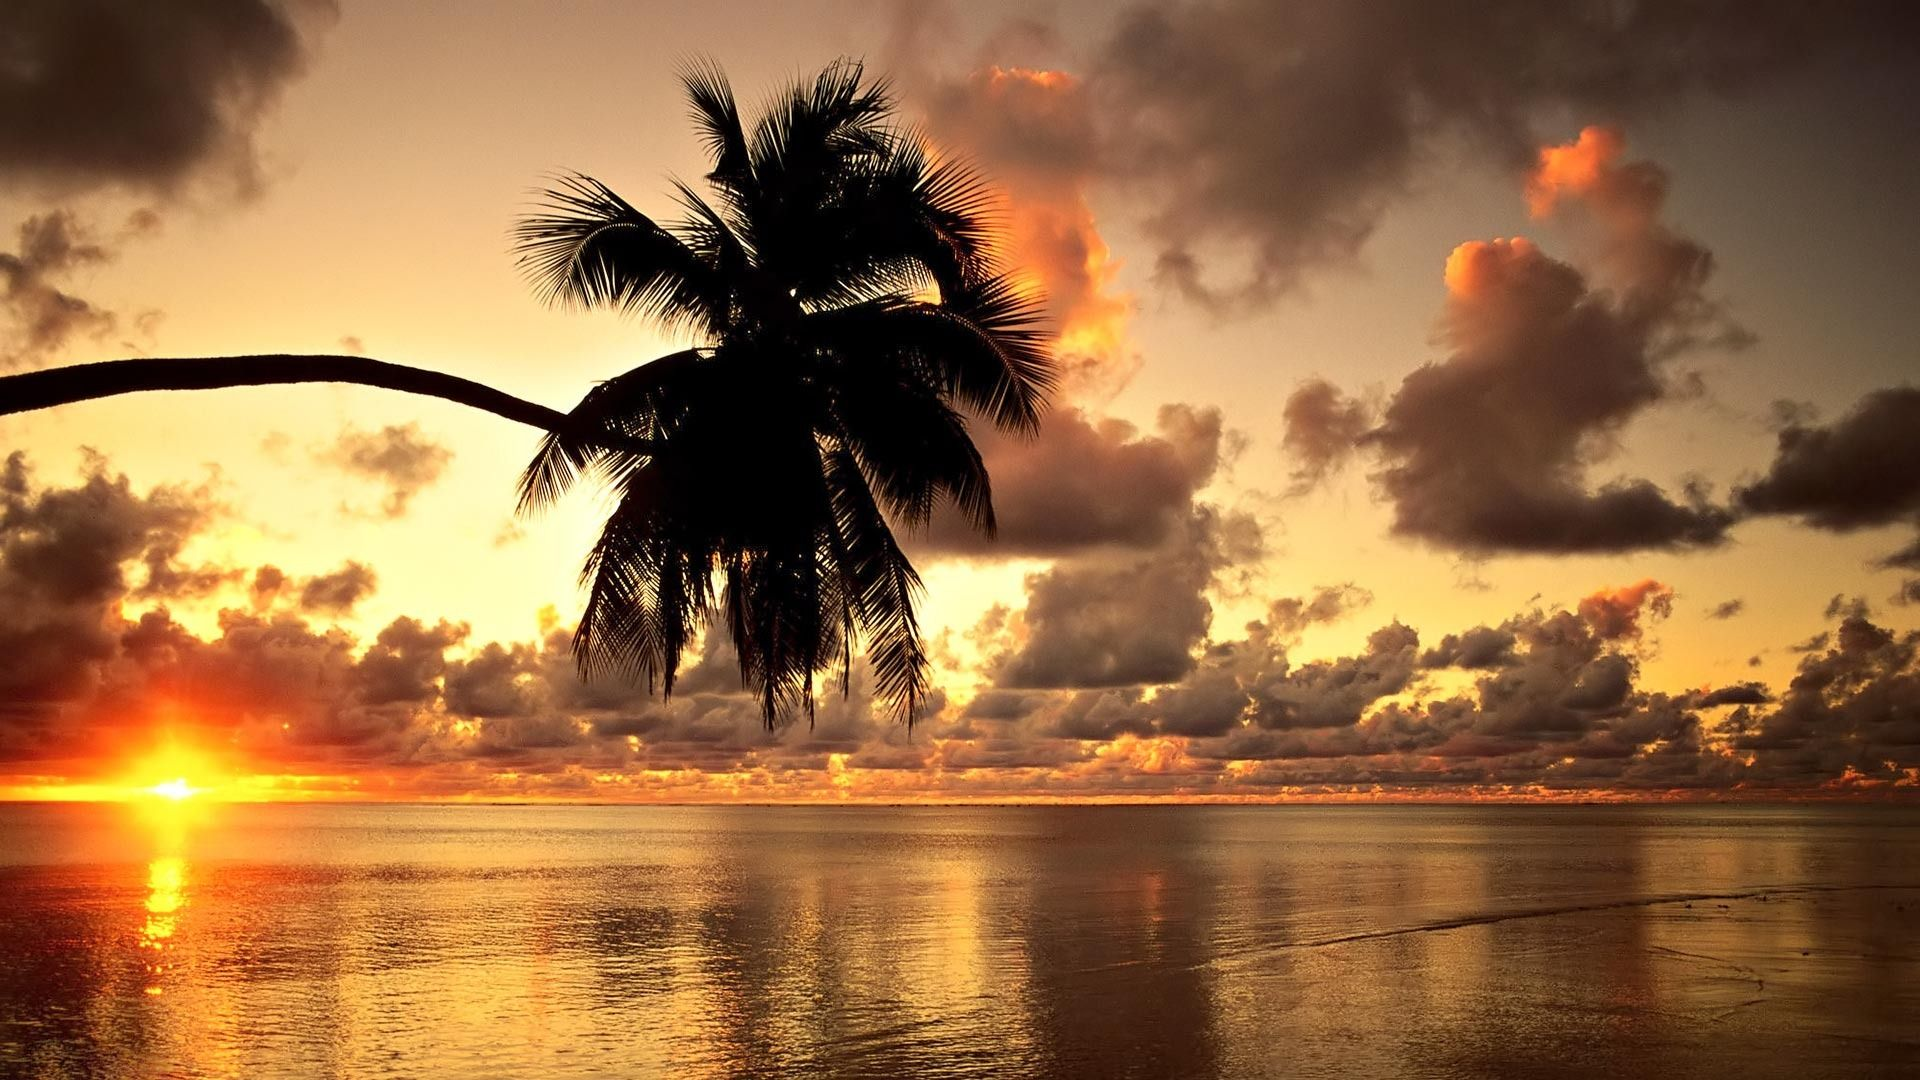 hdr wallpapers 1080p tropical - photo #19